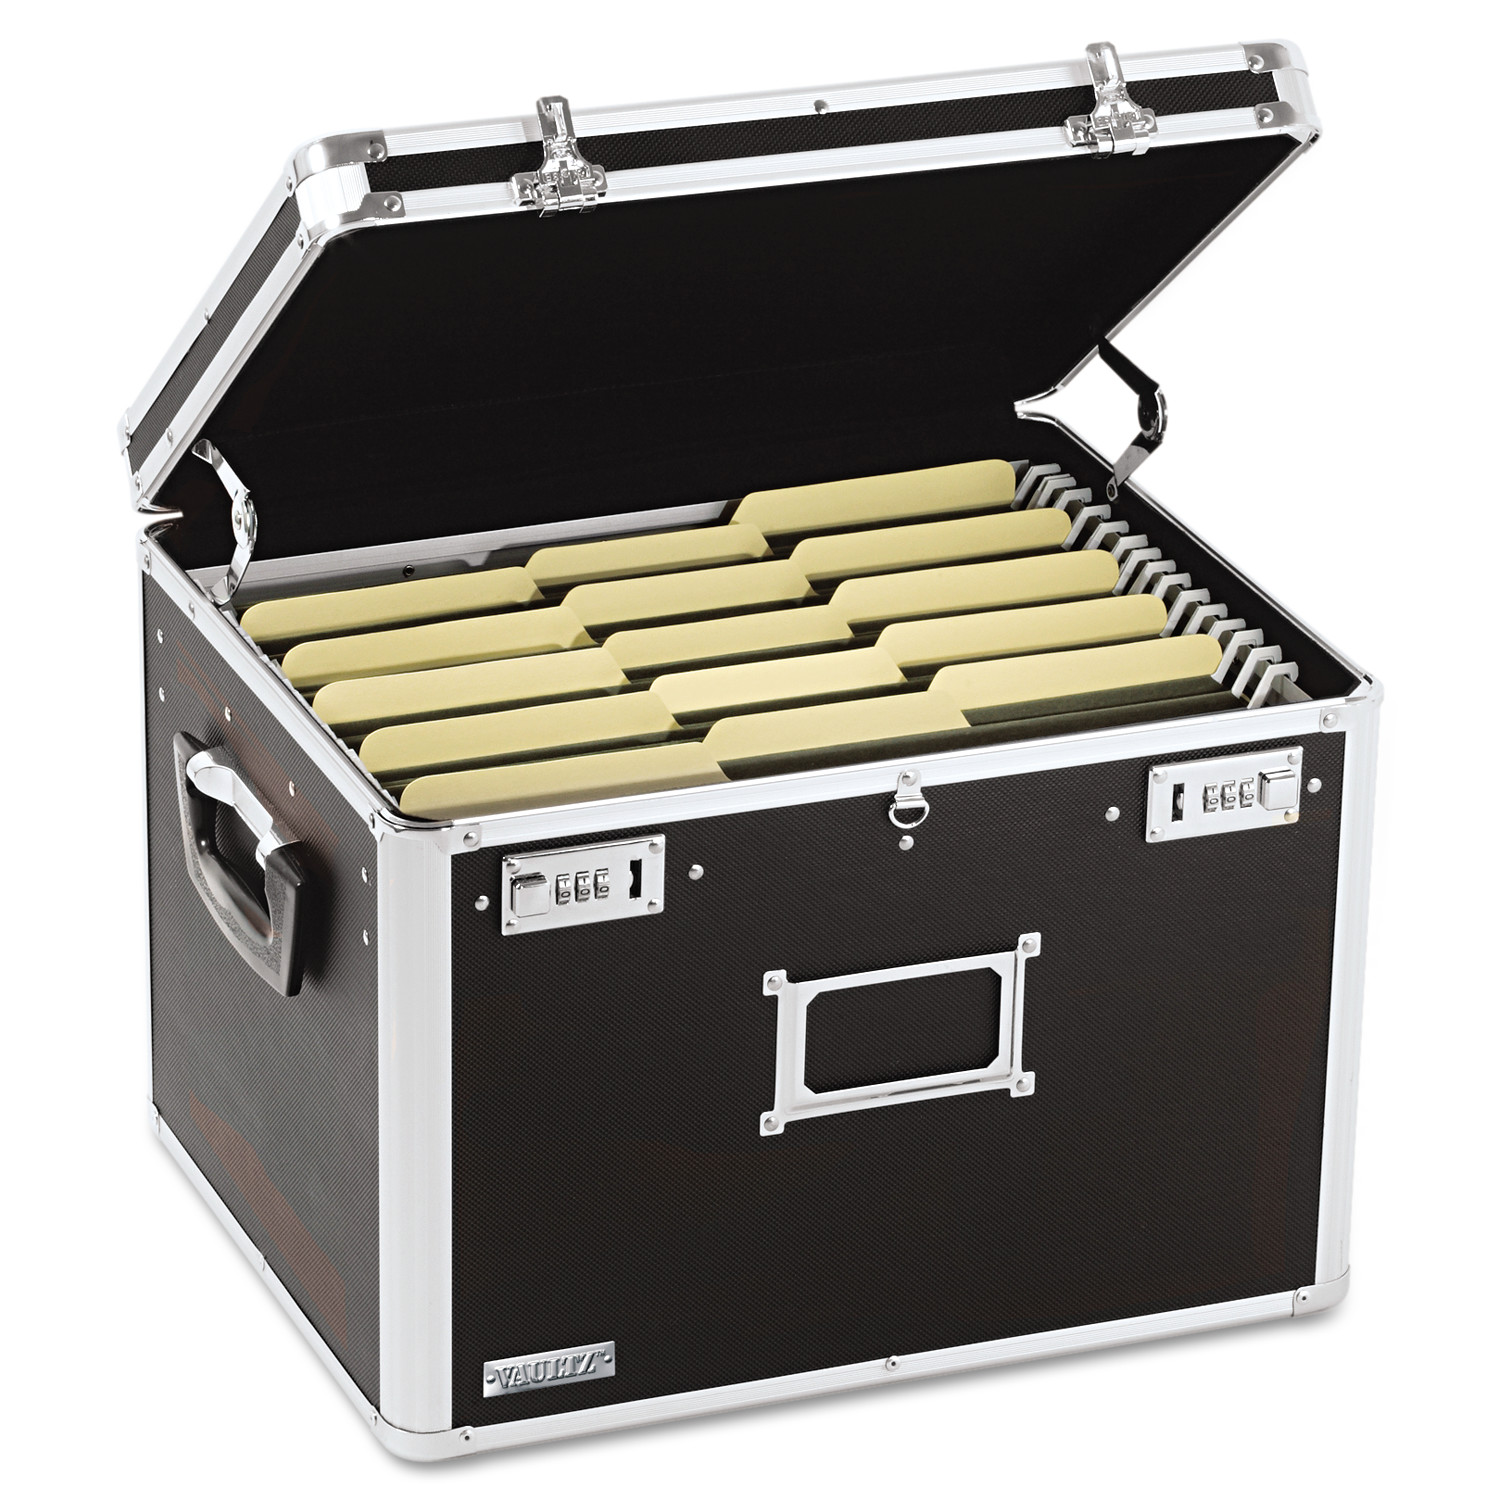 vaultz locking file chest storage box letterlegal x 14 x black walmartcom - Lockable Storage Box